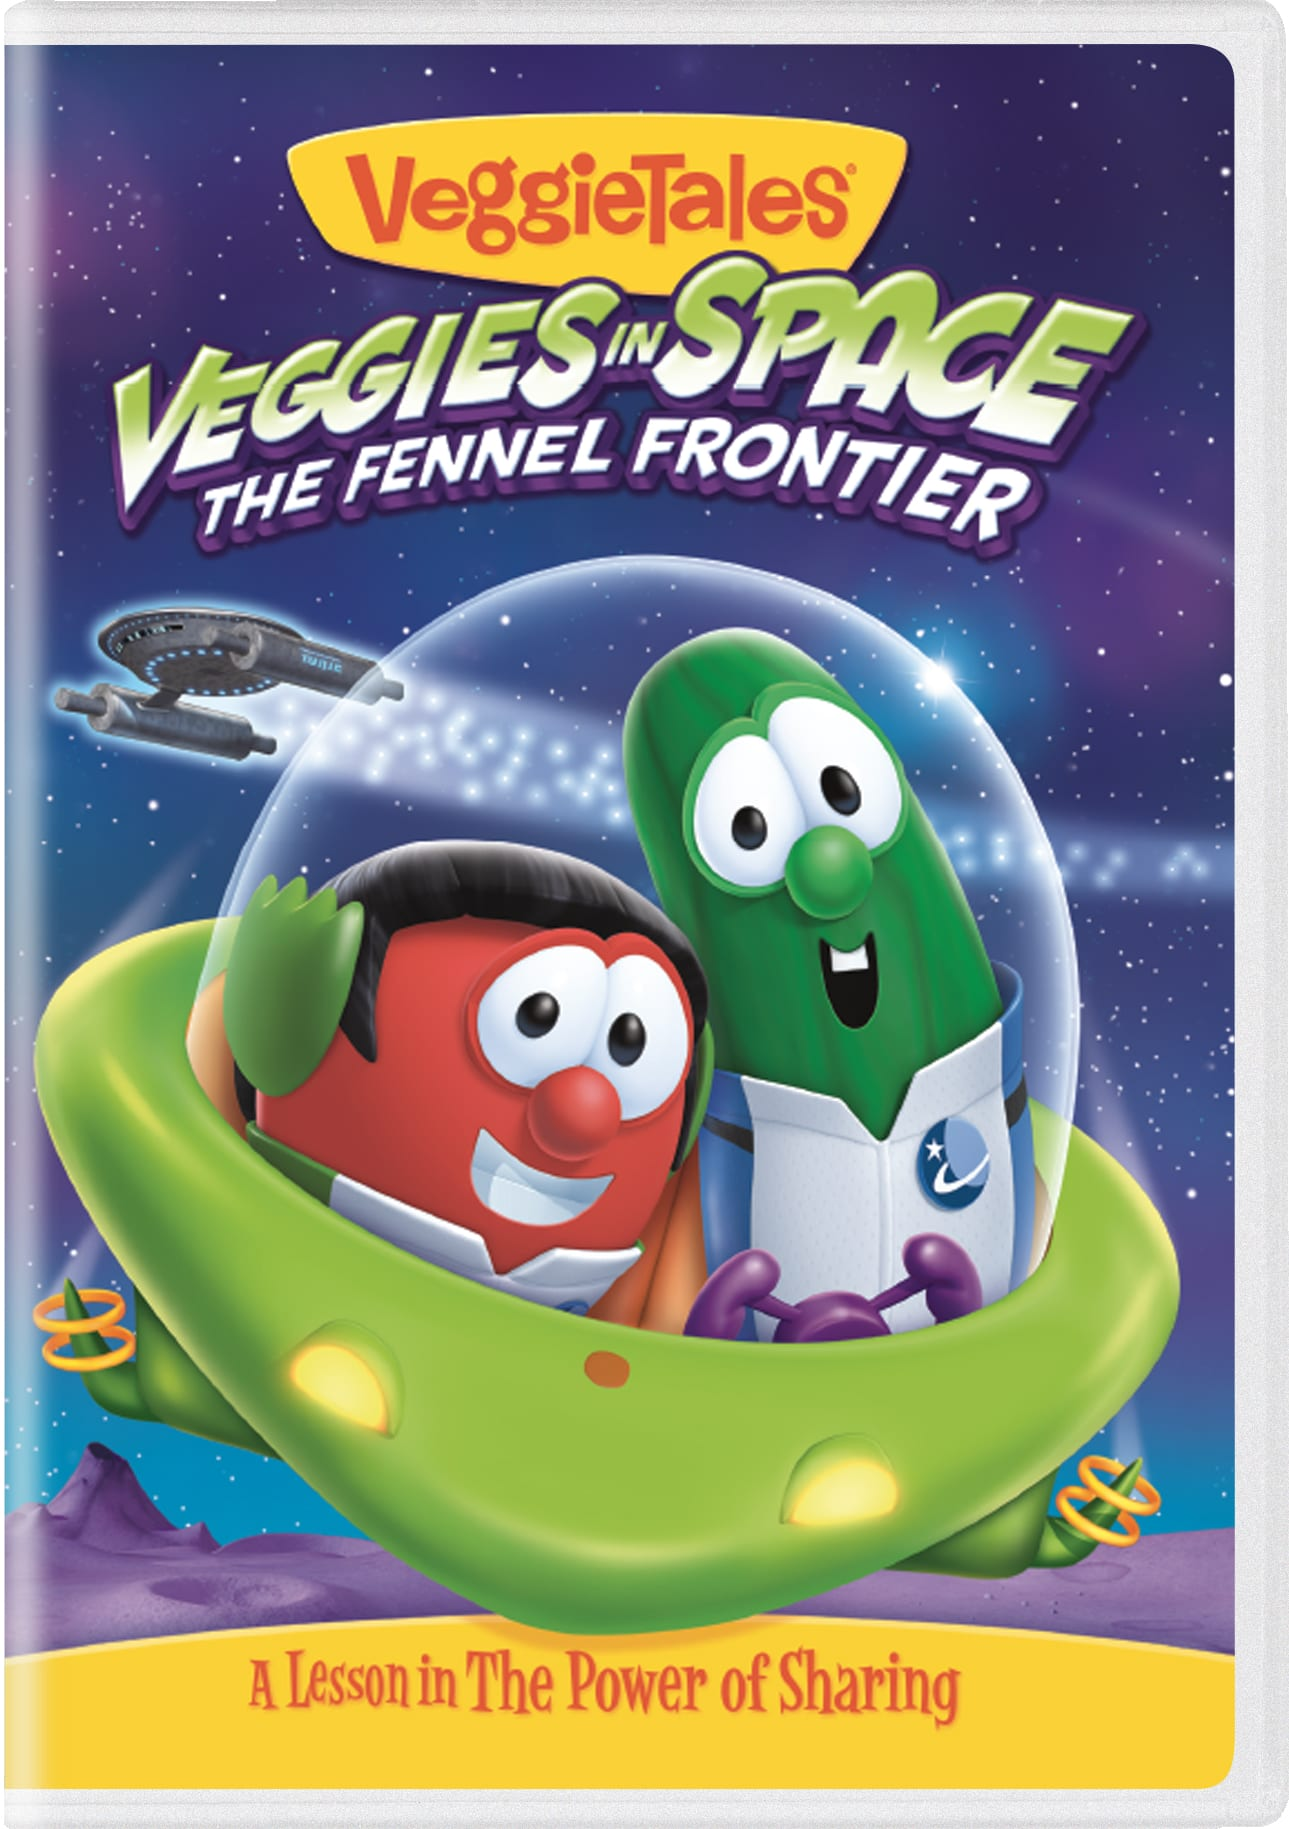 VeggieTales: Veggies in Space - The Fennel Frontier [DVD]